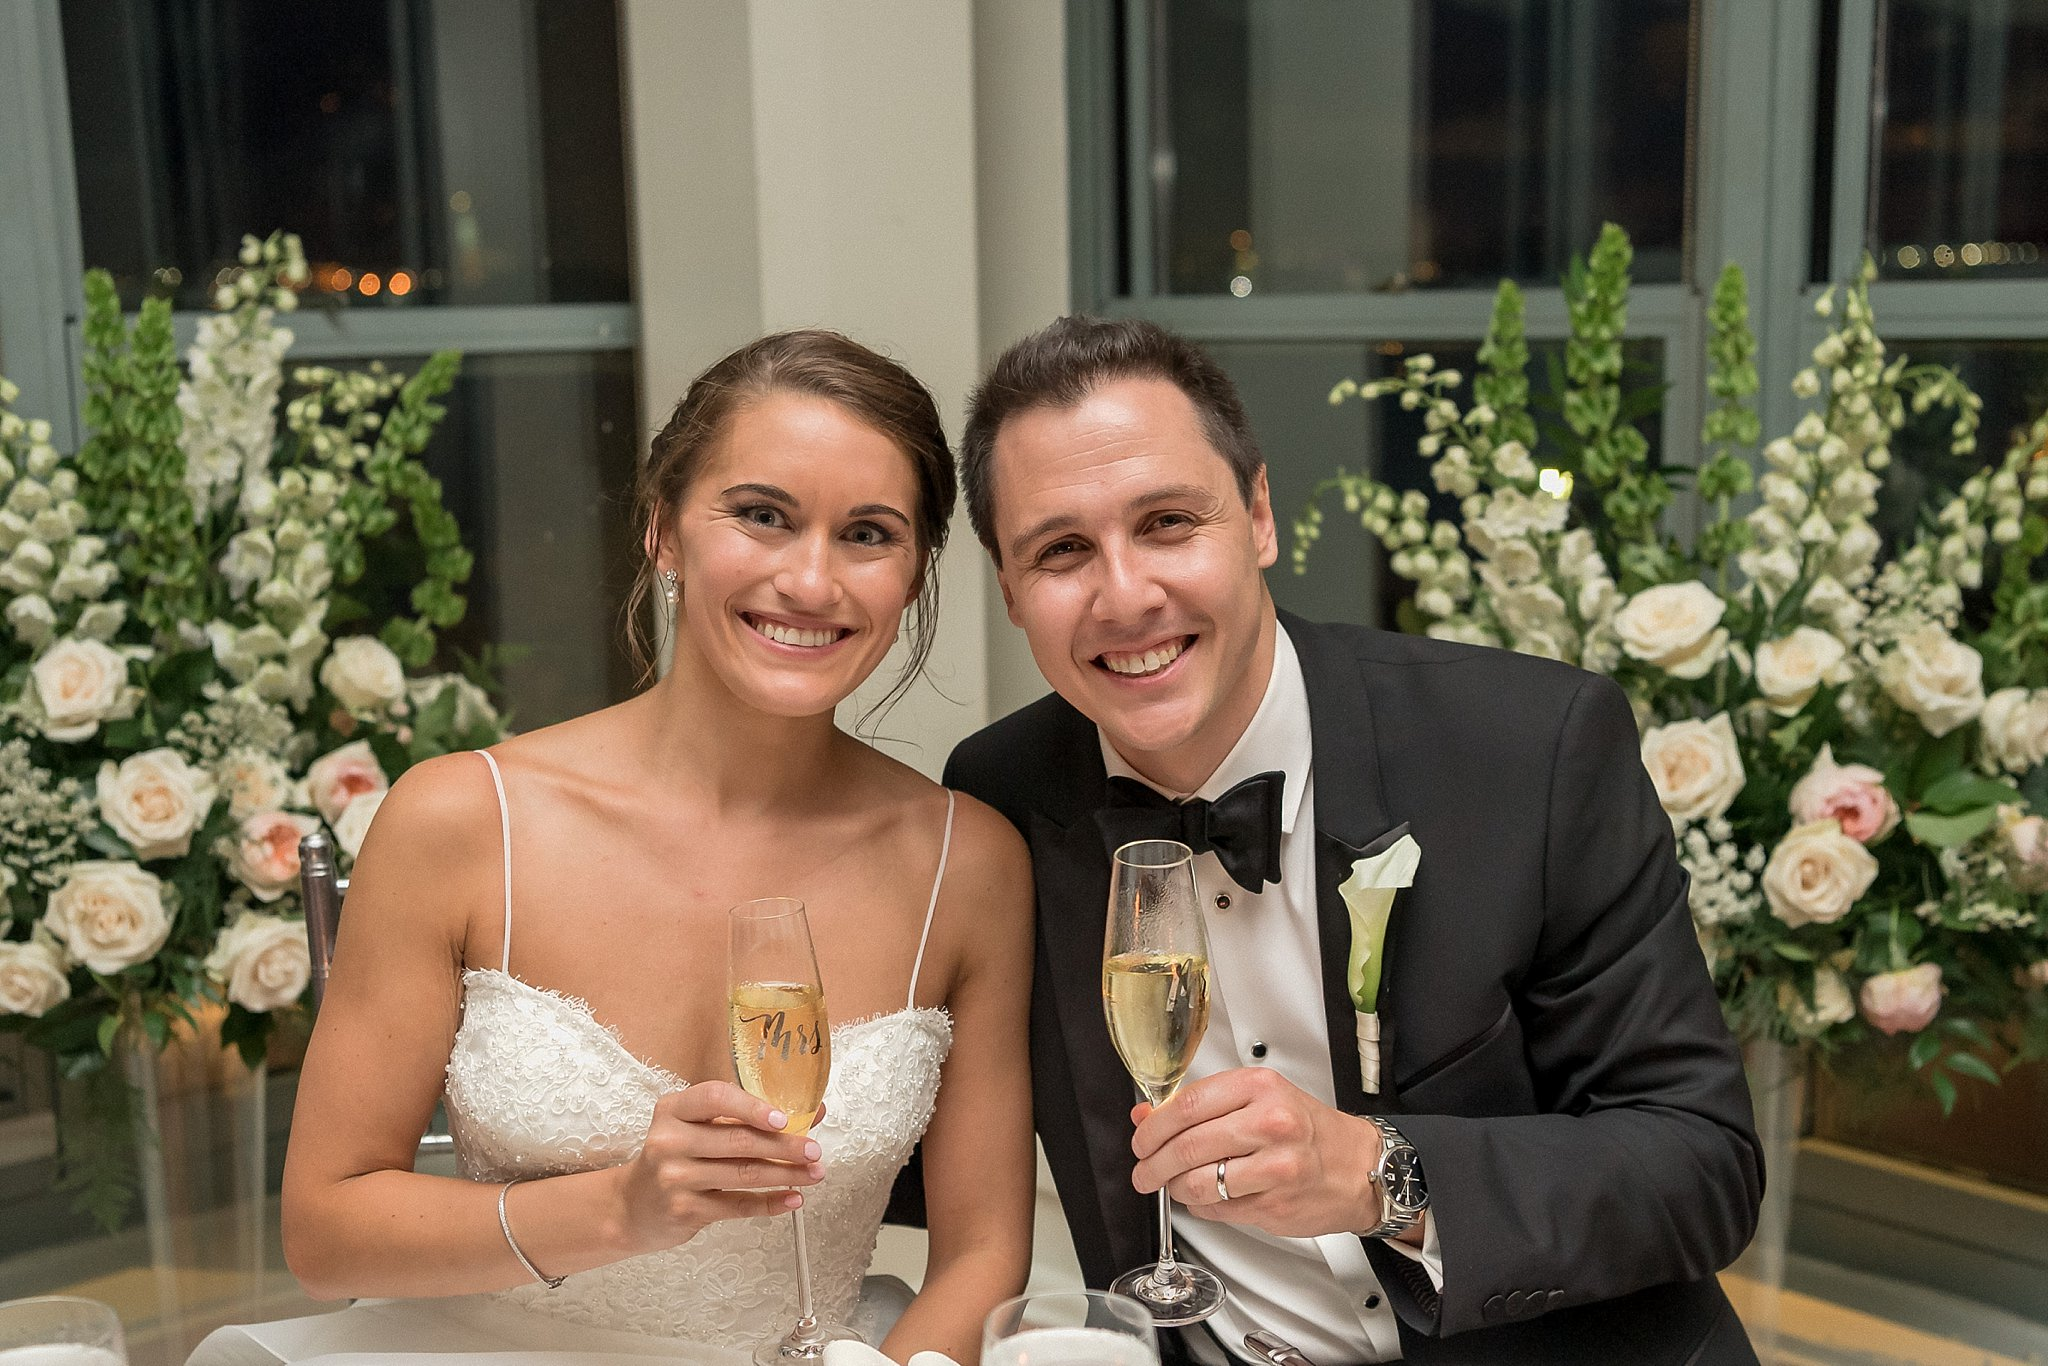 Married Couple Shot at their Battery Garden Reception, photographed by Susan Shek Wedding Photography in New York City, NY.